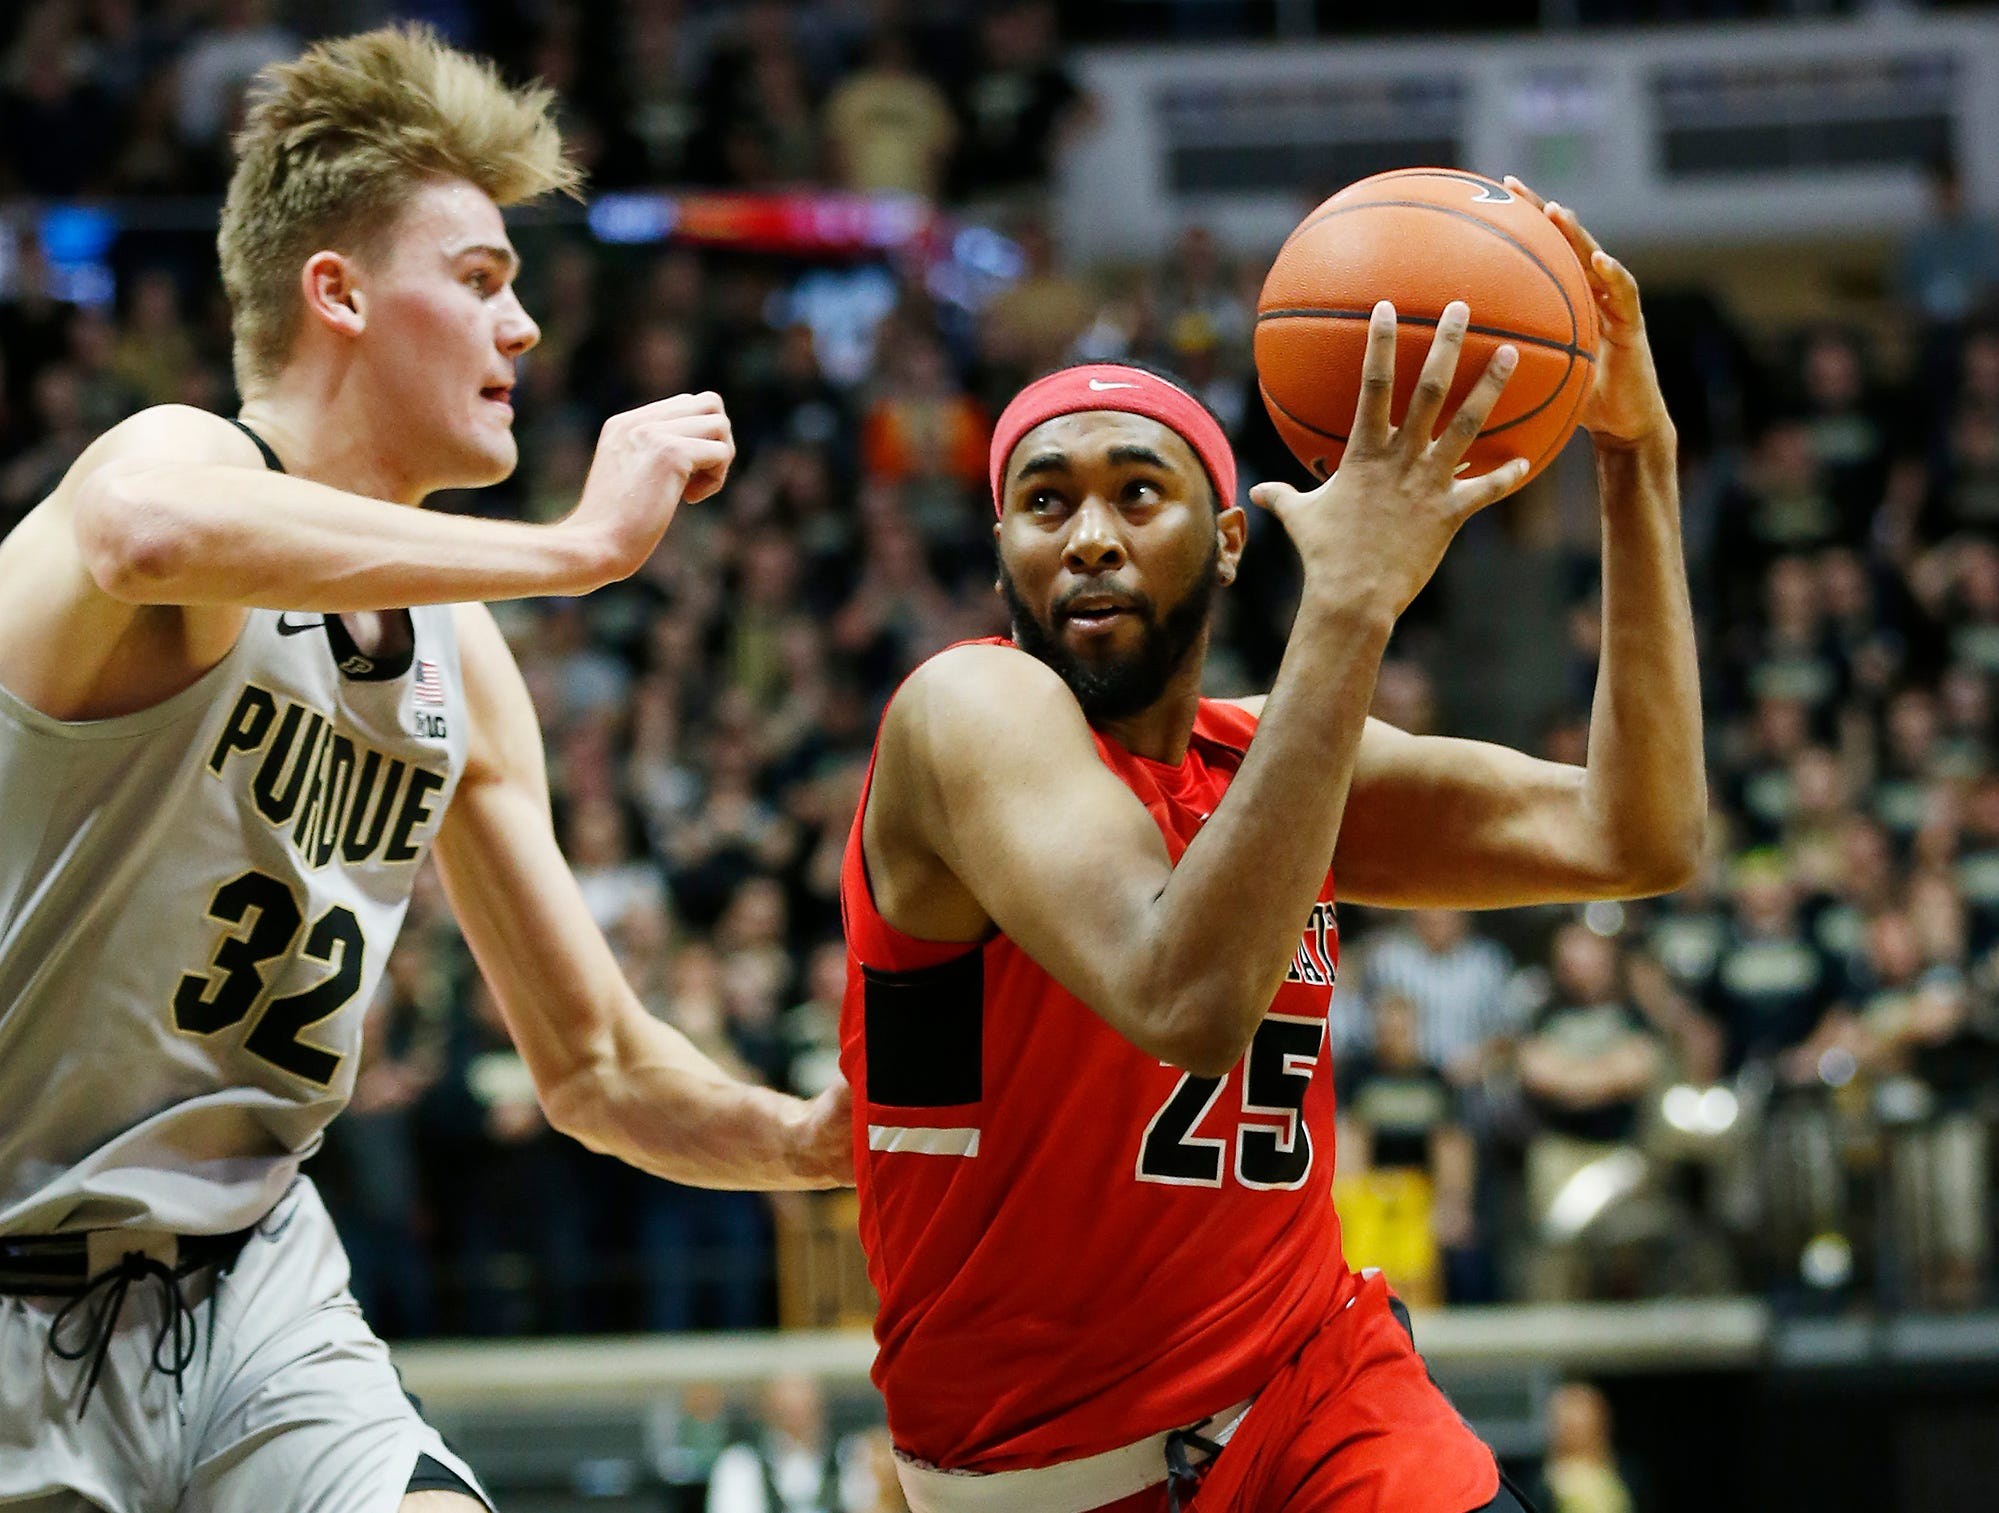 Tahjai Teague of Ball State with a drive to the basket against Matt Haarms of Purdue Saturday, November 10, 2018, at Mackey Arena.